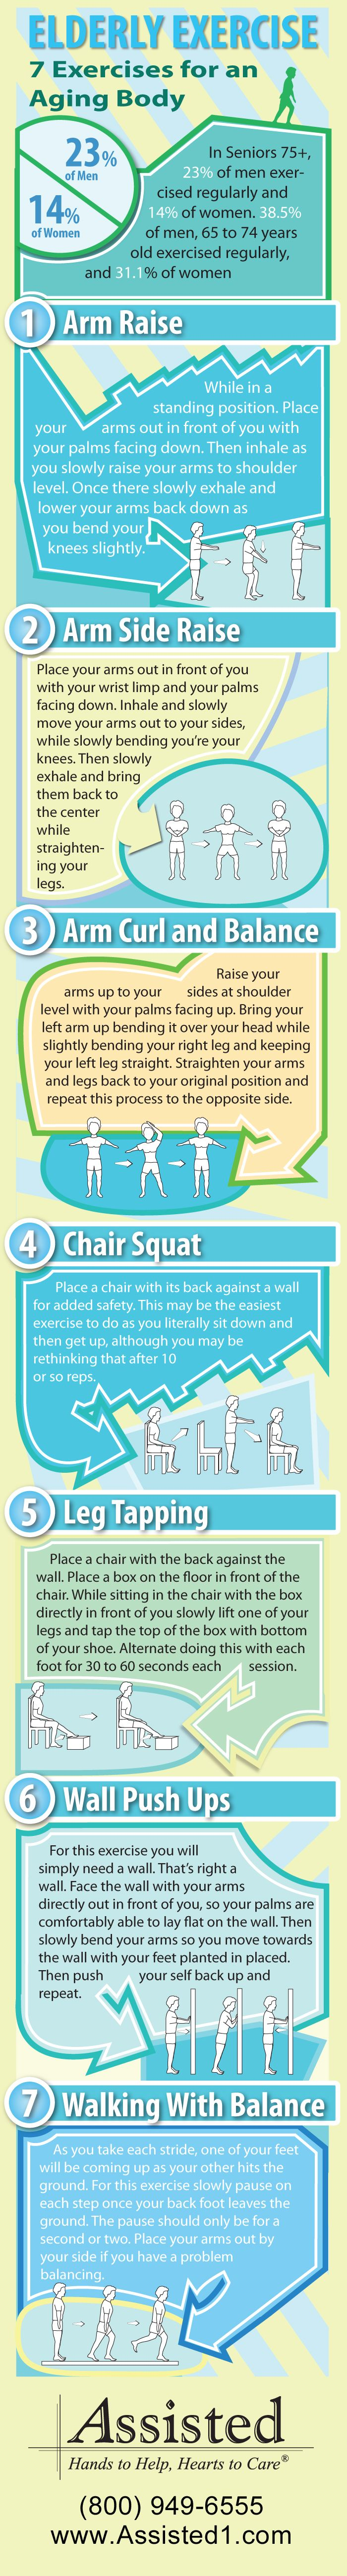 7 Elderly Exercises to get the Body Moving #ElderlyExercise #HomeHealthCare #AssistedHealthcare